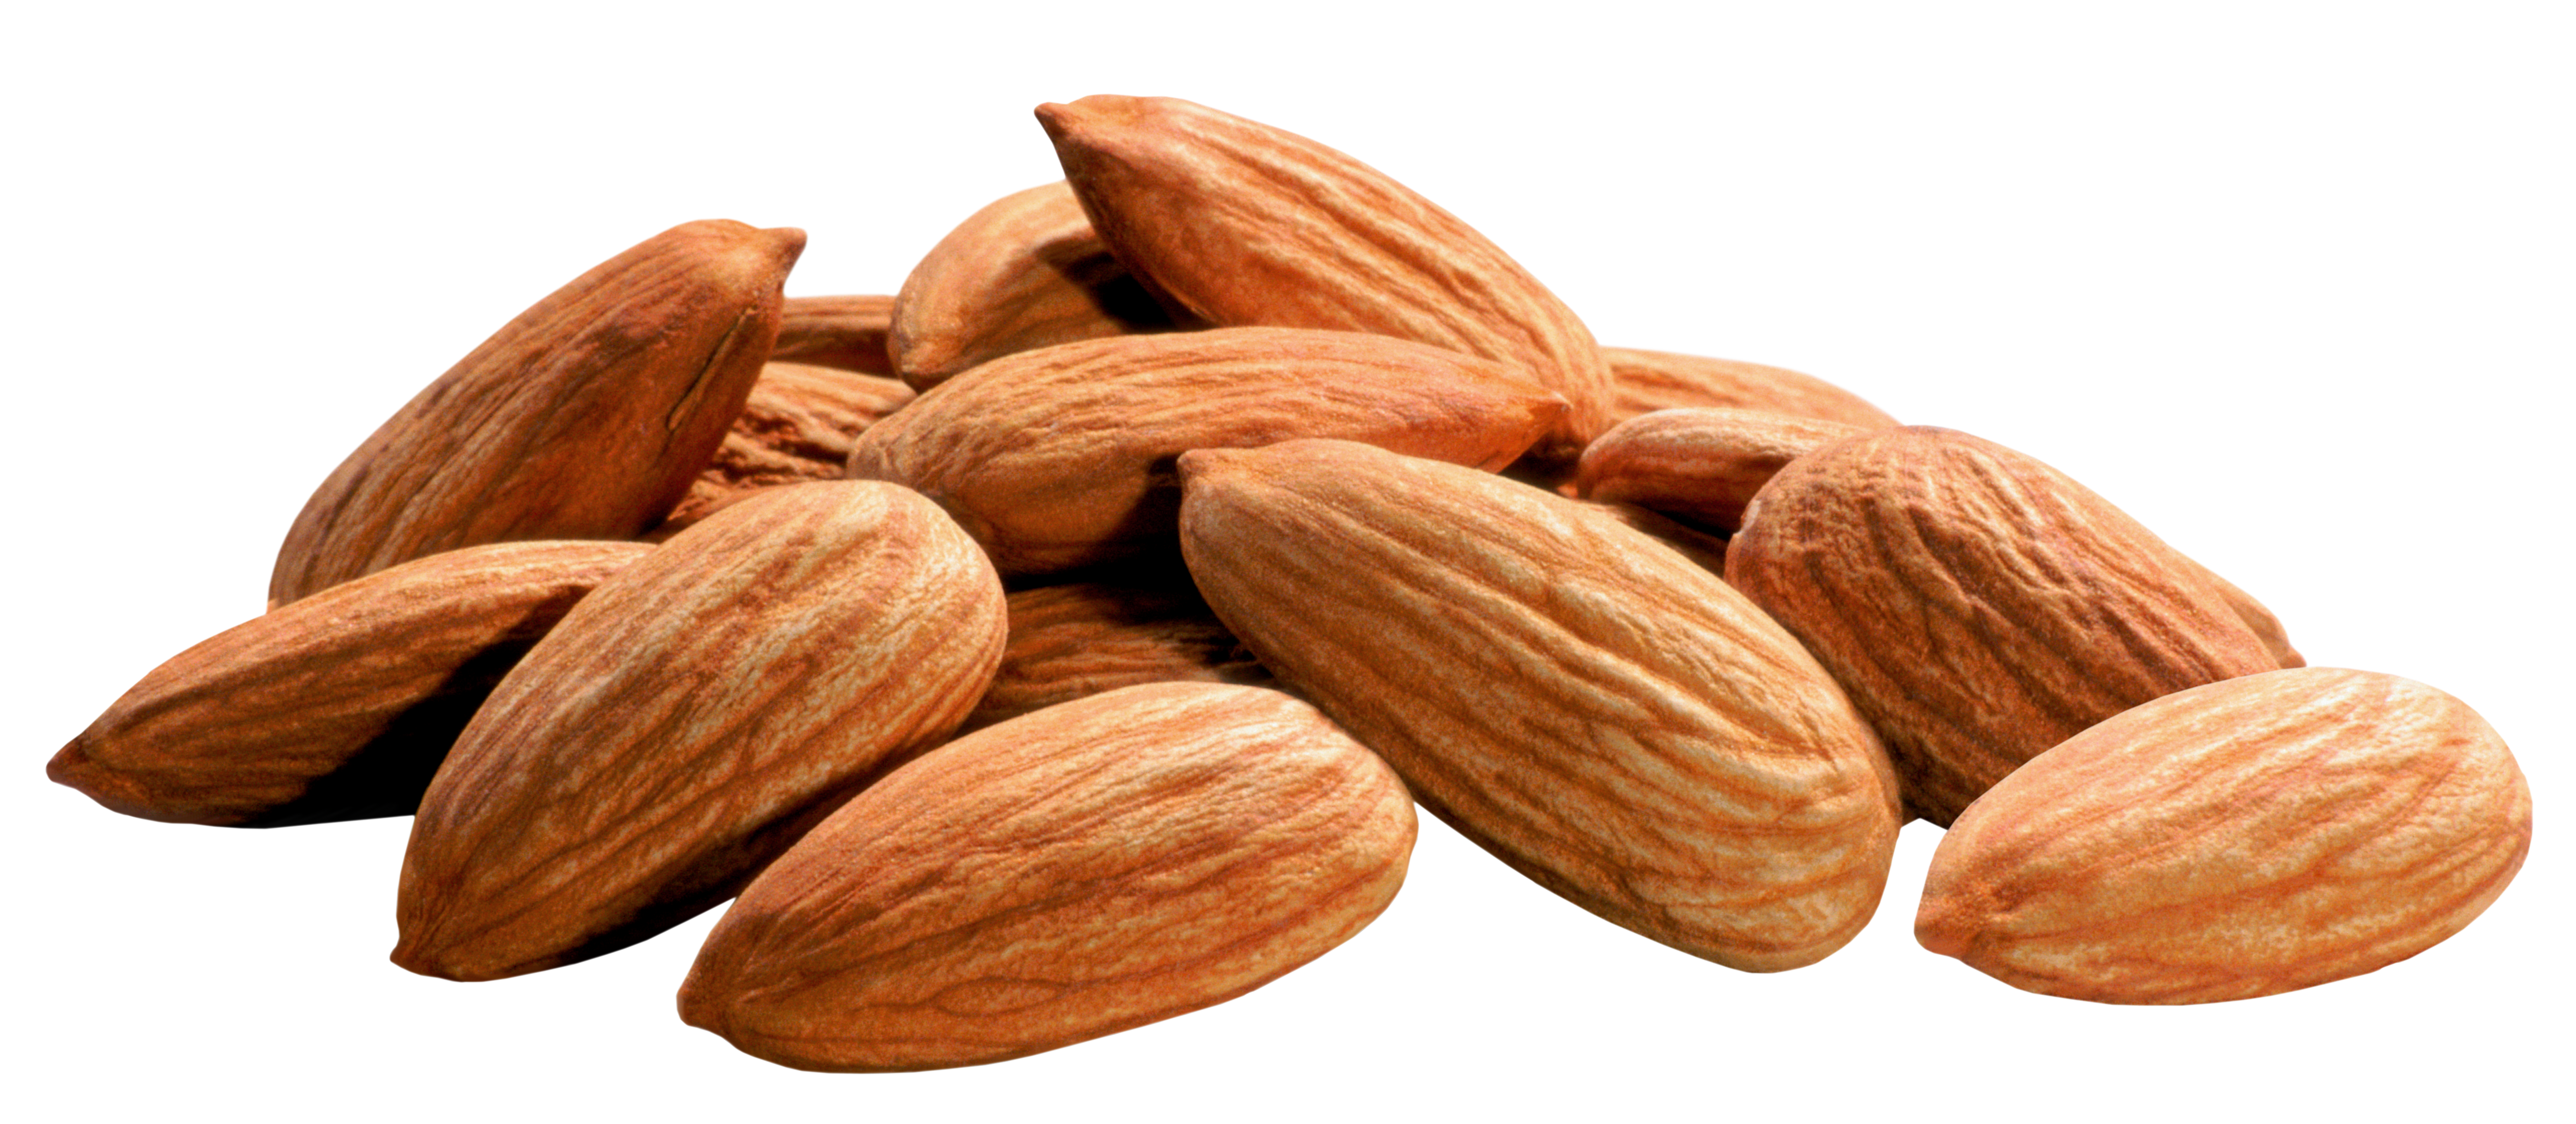 Beans clipart nuts. Free almonds collection vector